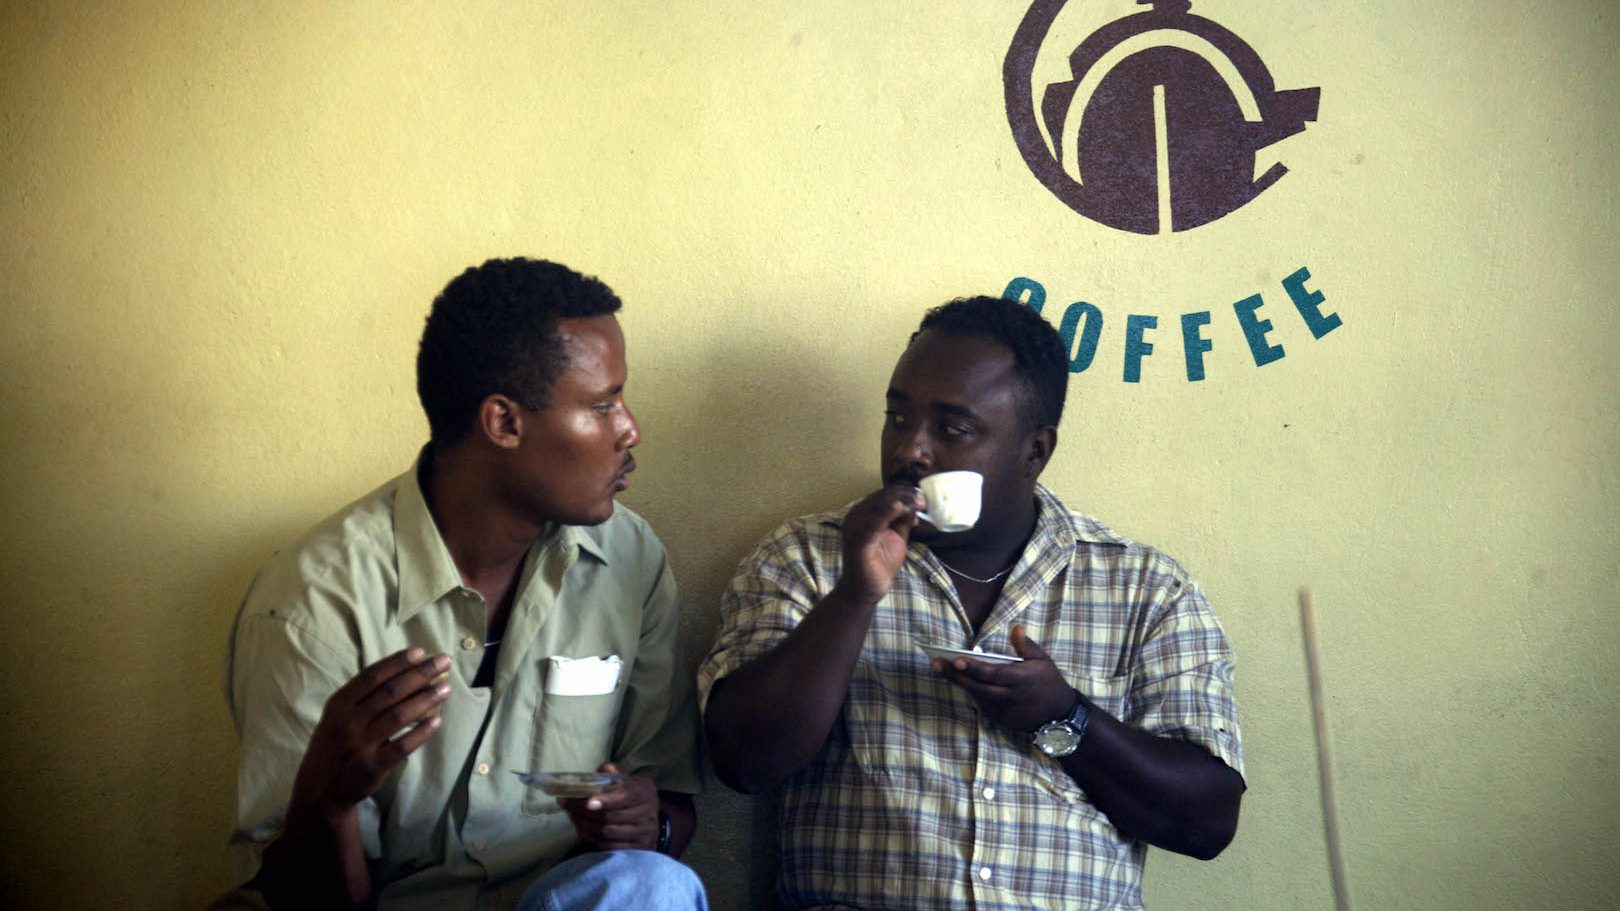 Researchers say global warming could reduce Ethiopia's coffee growing areas by as much as 60%.